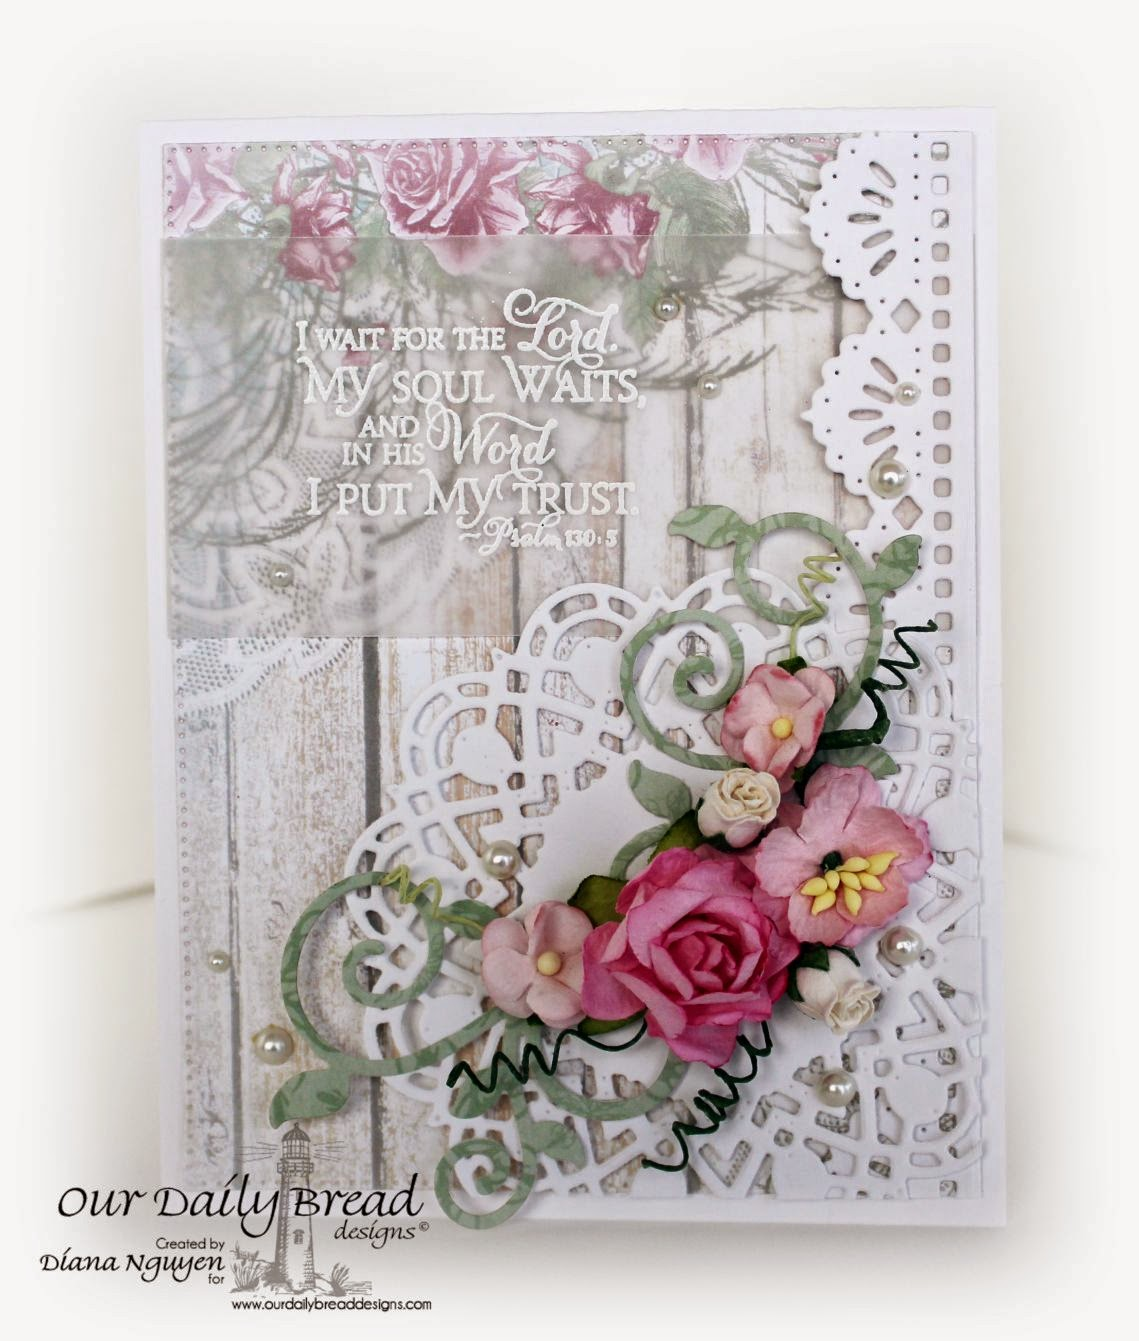 Our Daily Bread Designs, Shabby Rose, Scripture Collection 9, Doily, Fancy Foliage, Beautiful Borders, Designed by Diana Nguyen